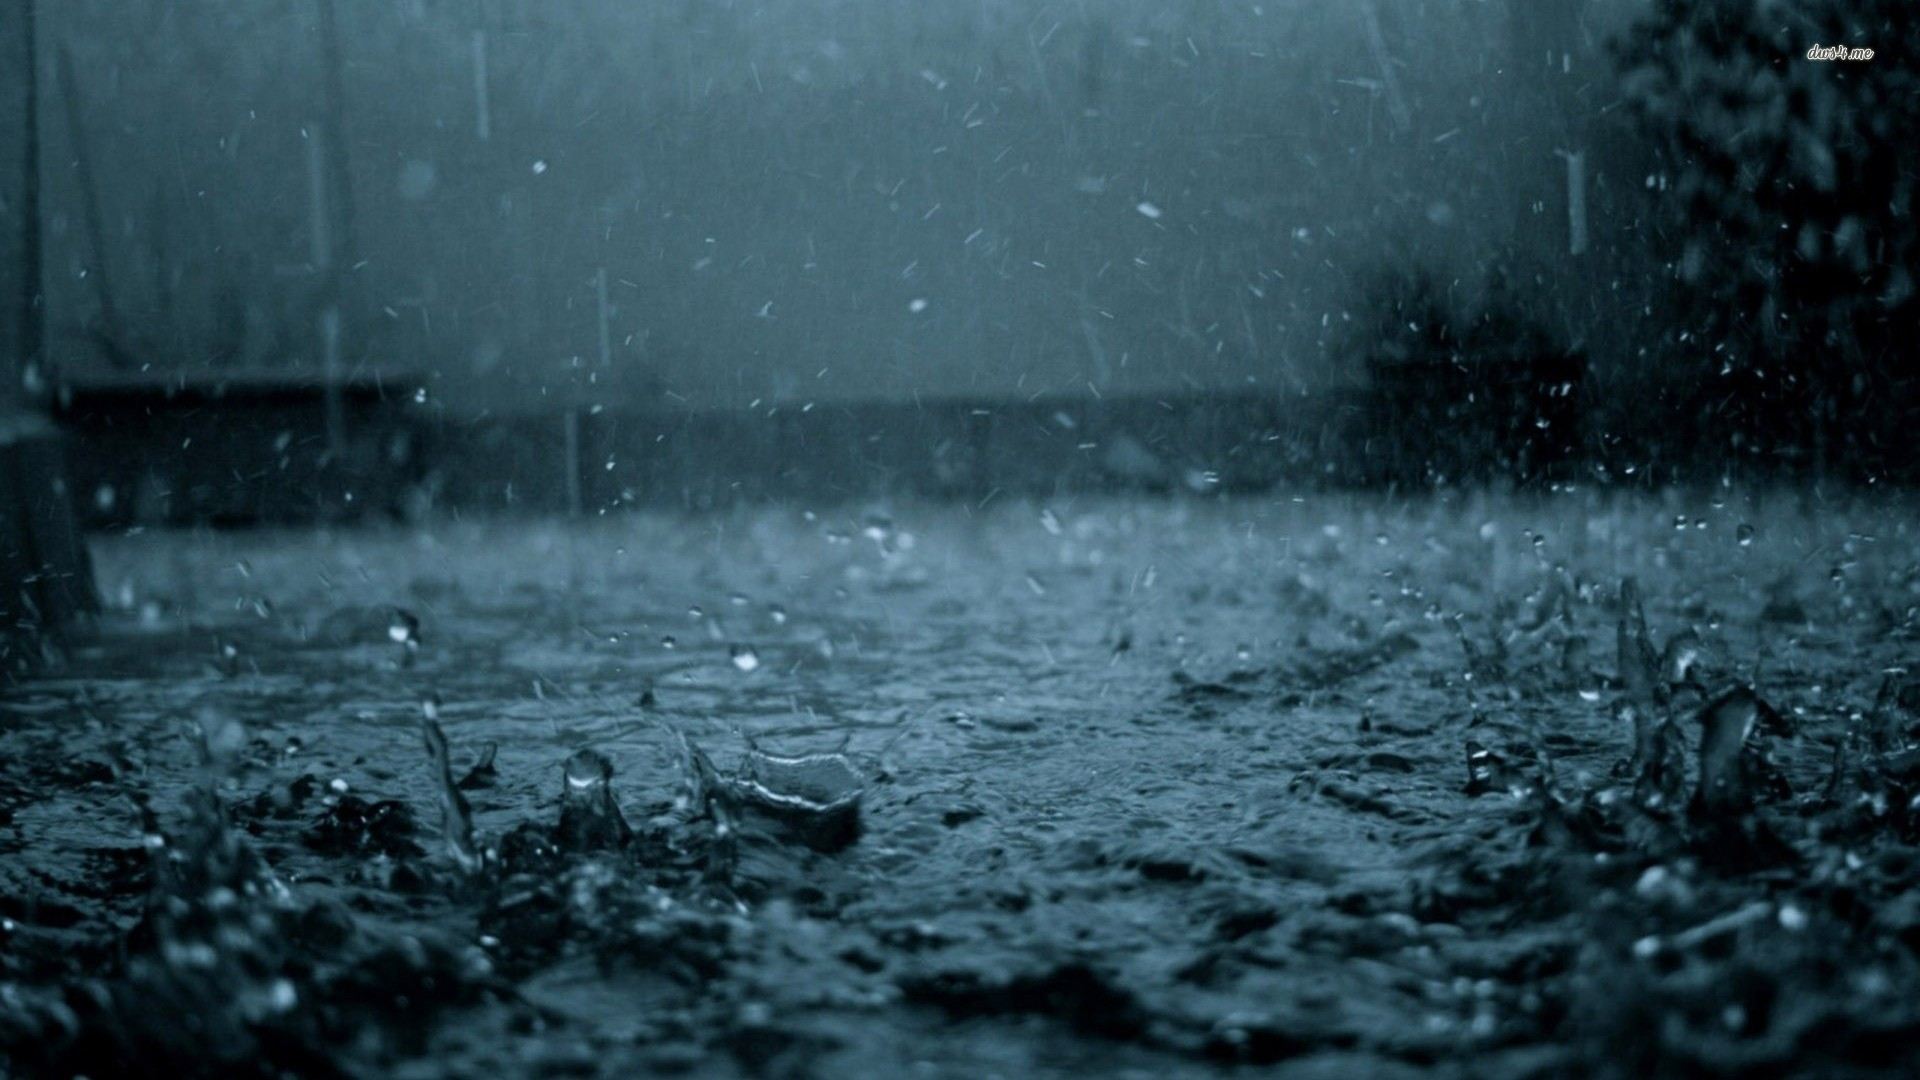 36875160-rainy-wallpaper.jpg